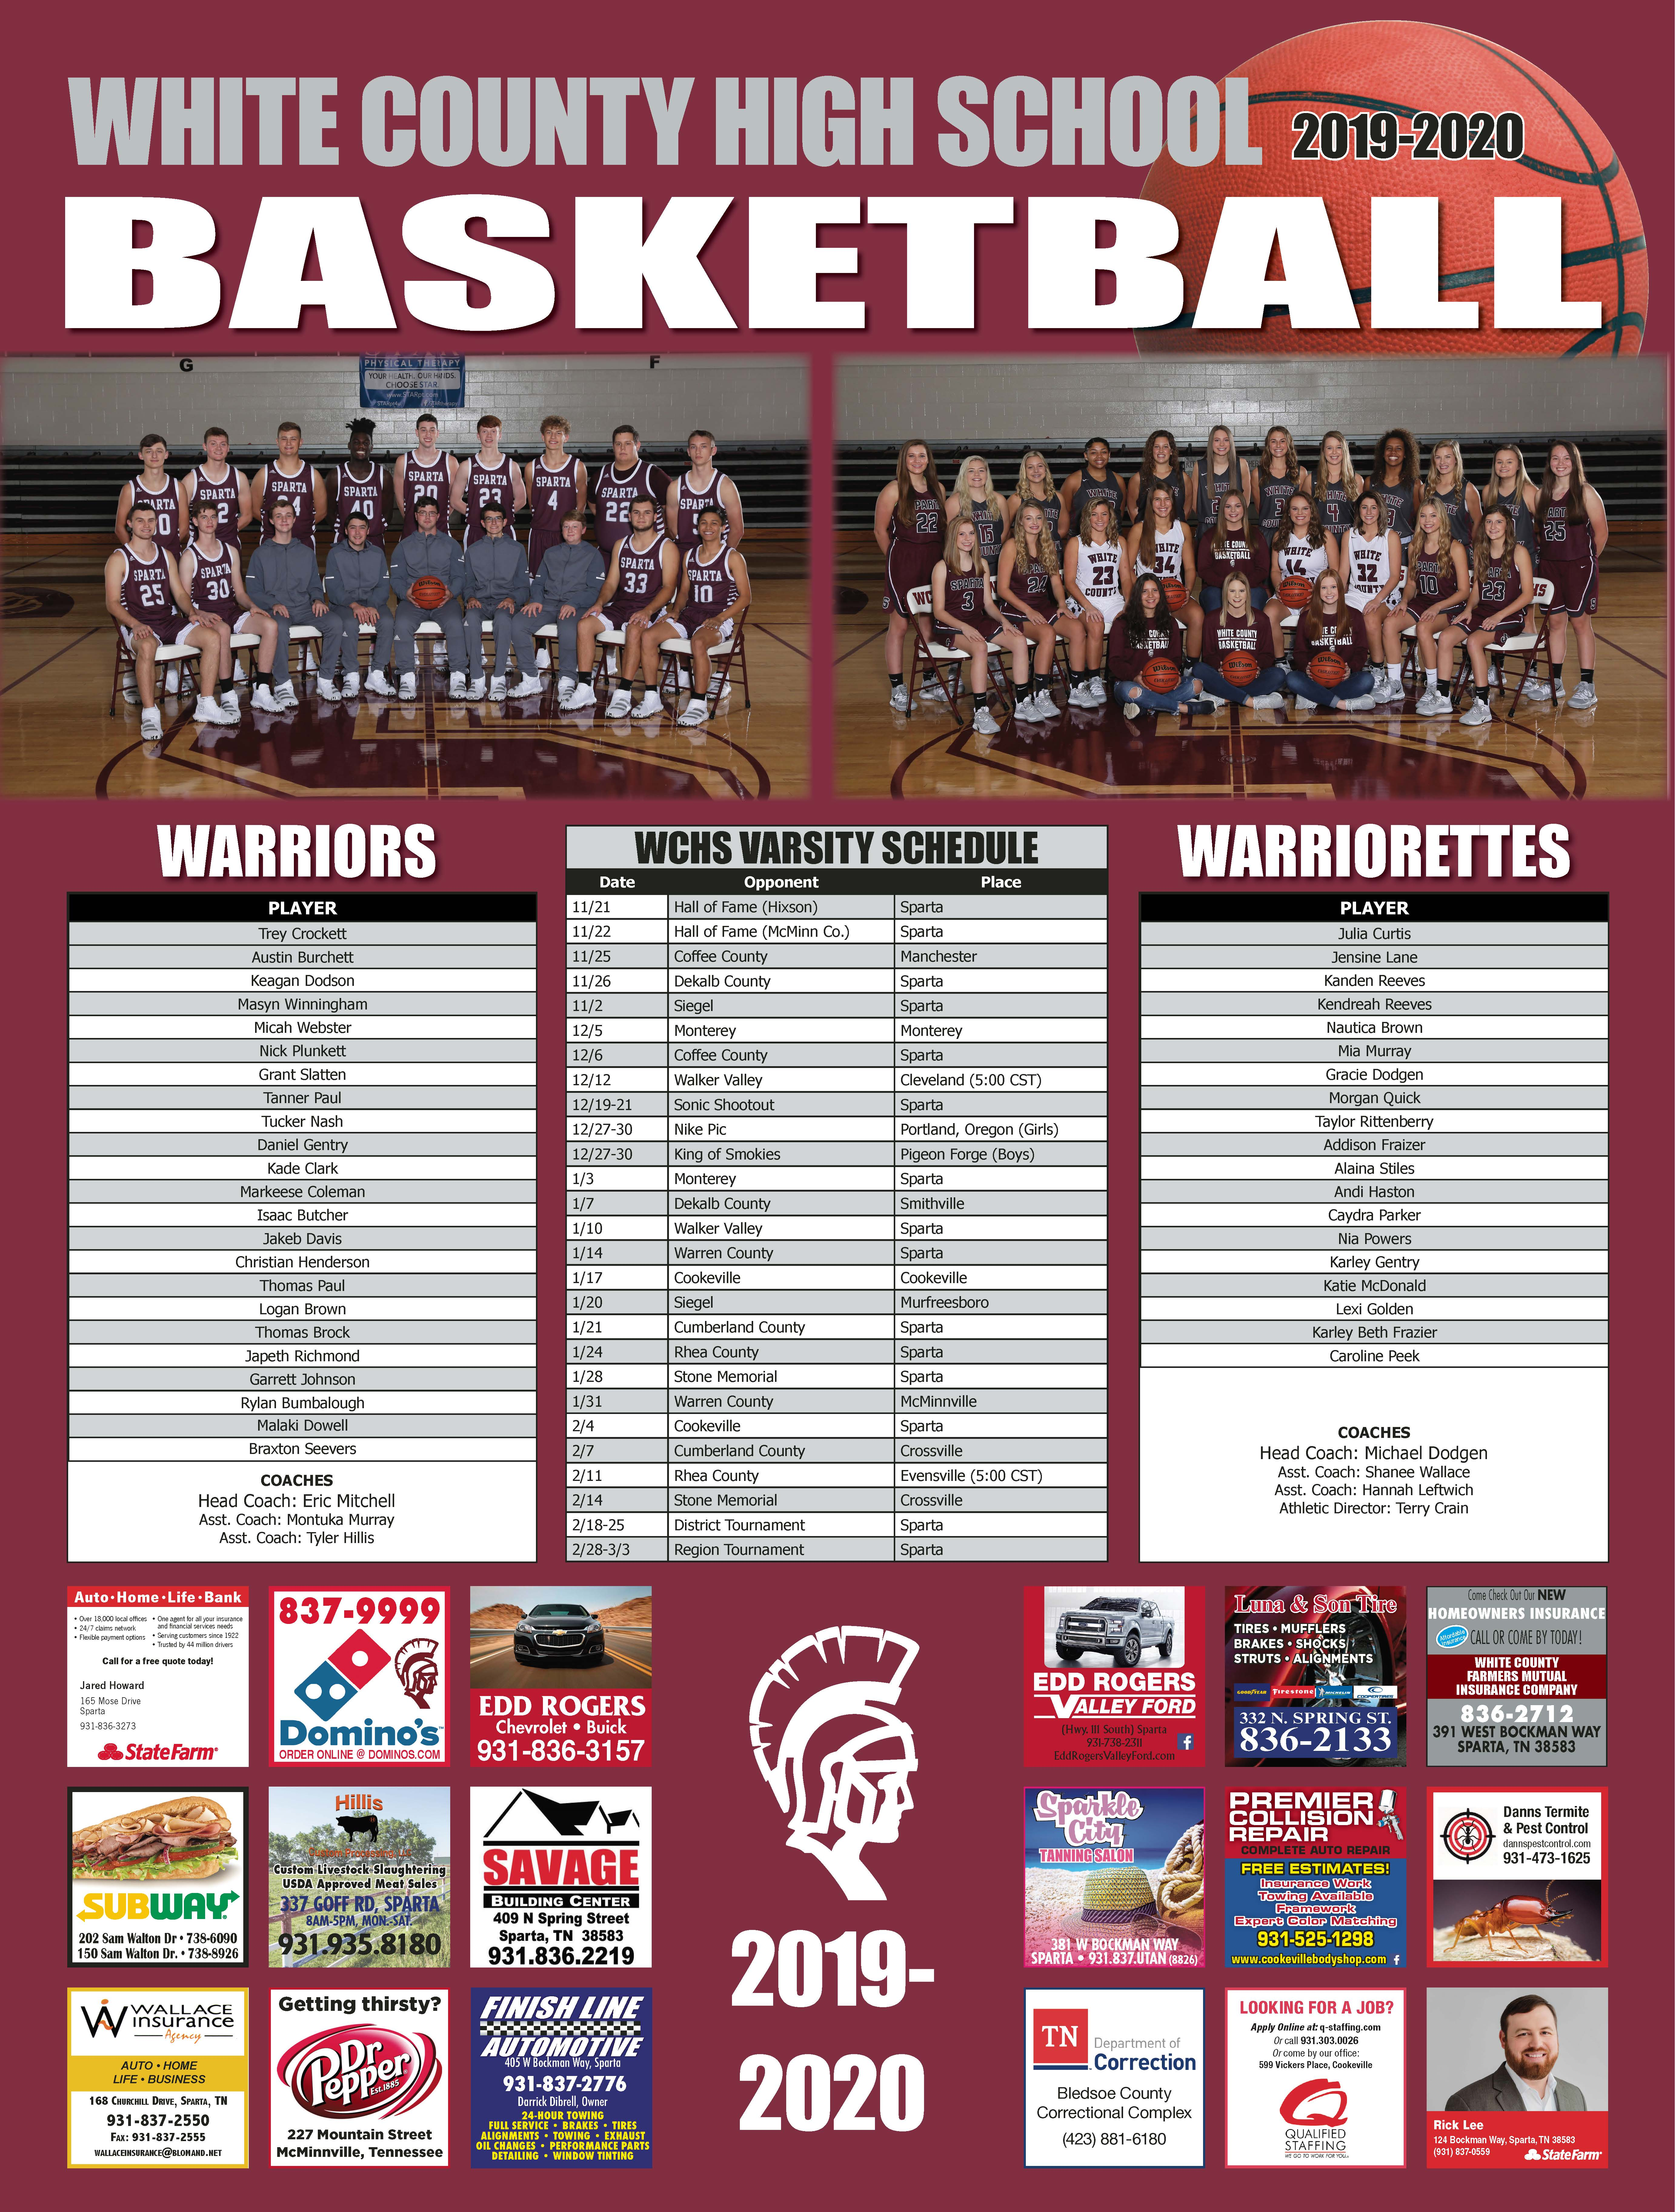 WCHS 2019 Basketball Poster<div style='clear:both;width:100%;height:0px;'></div><span class='cat'>Logos and Printwork</span>